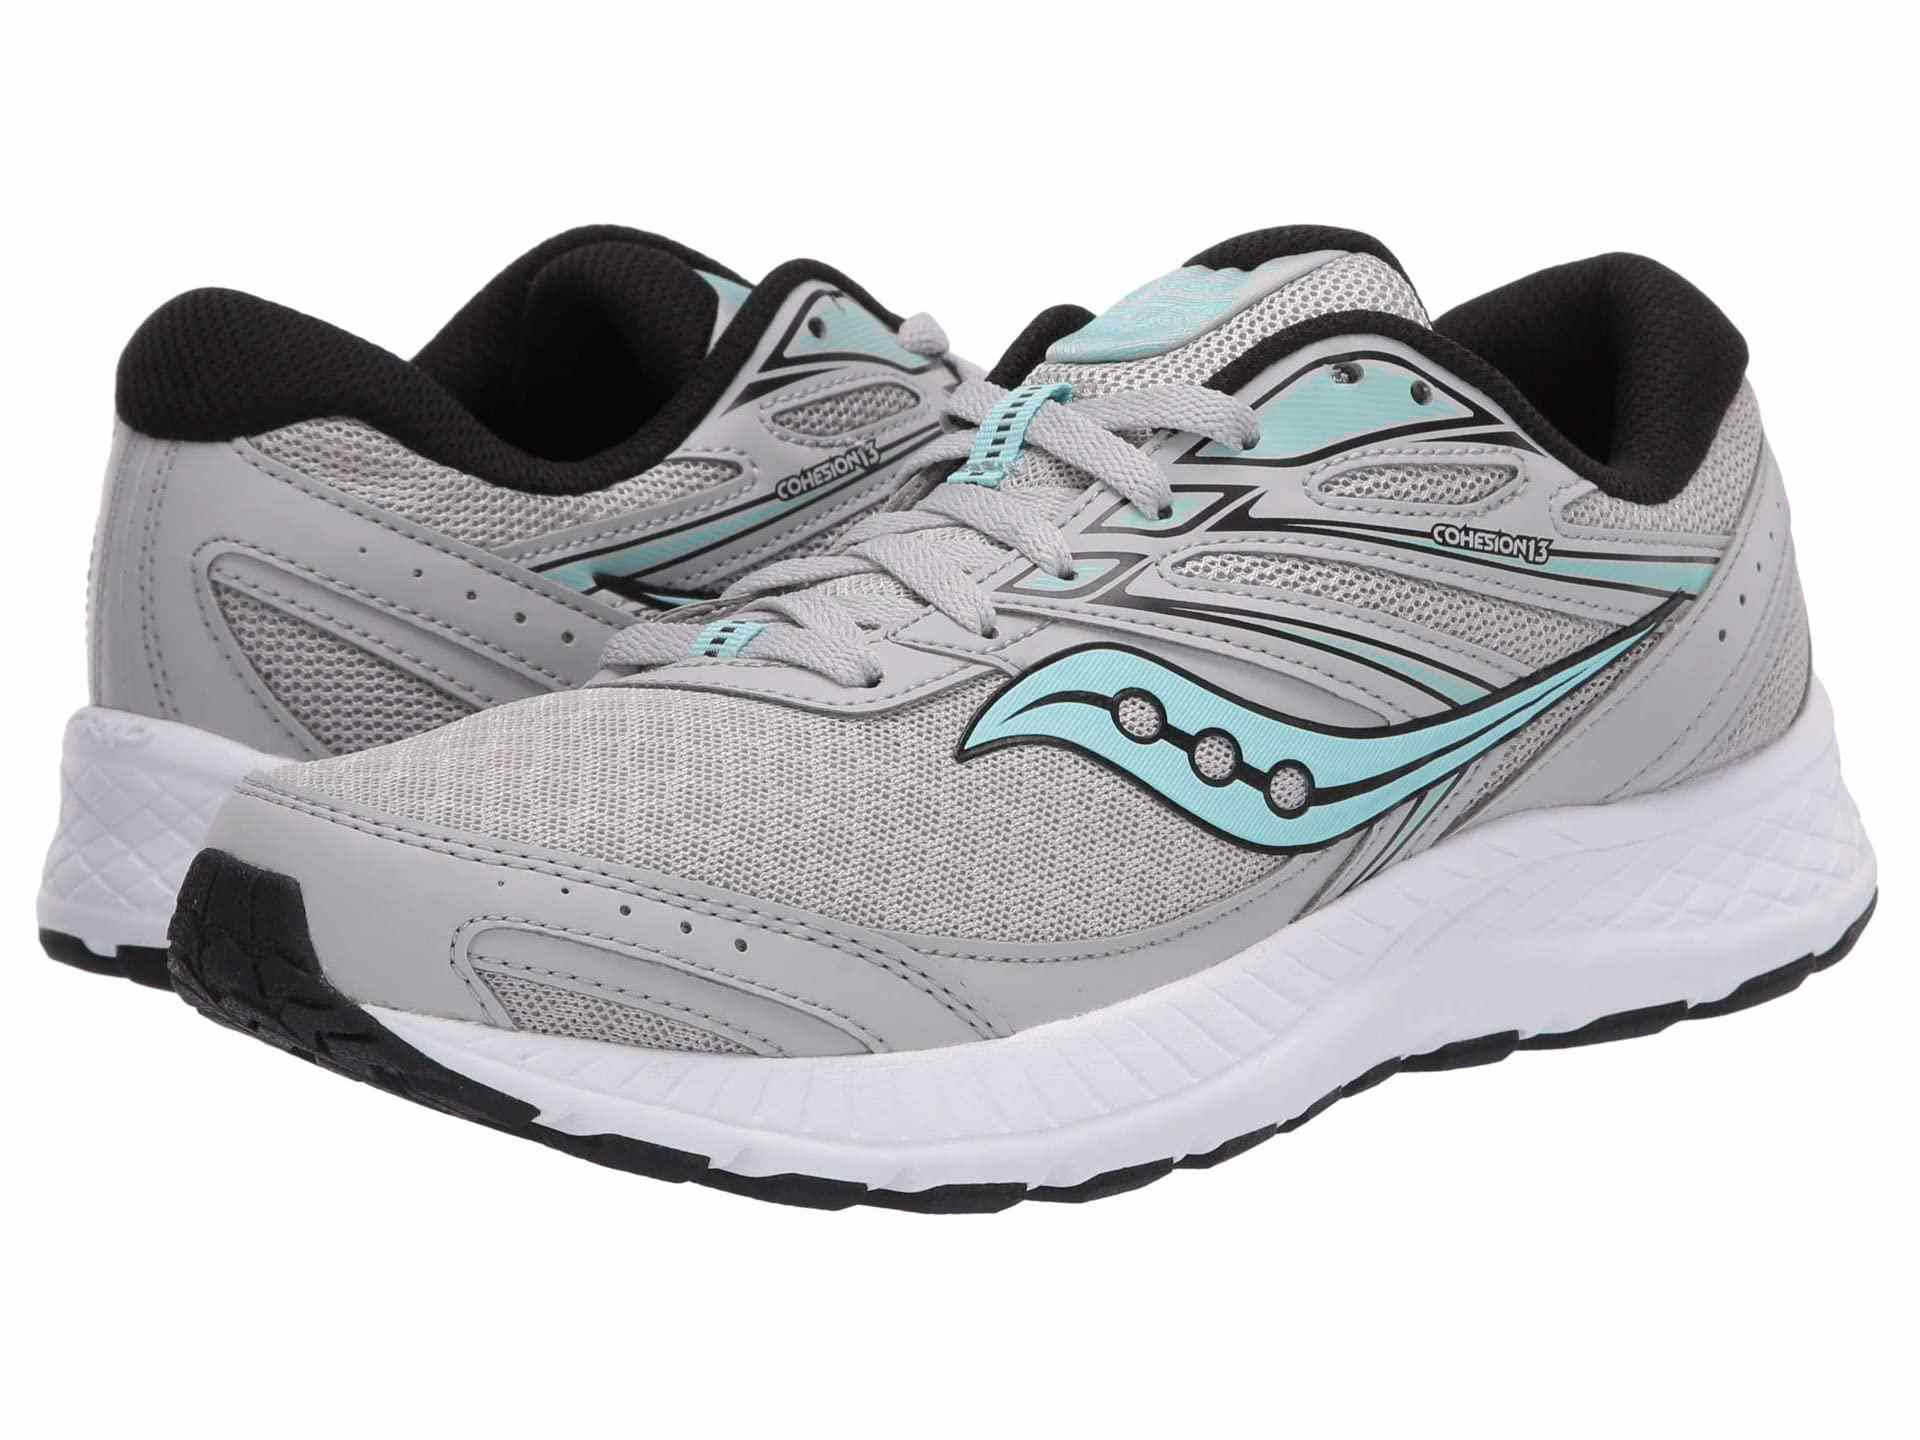 Saucony Versafoam Cohesion Running Shoes